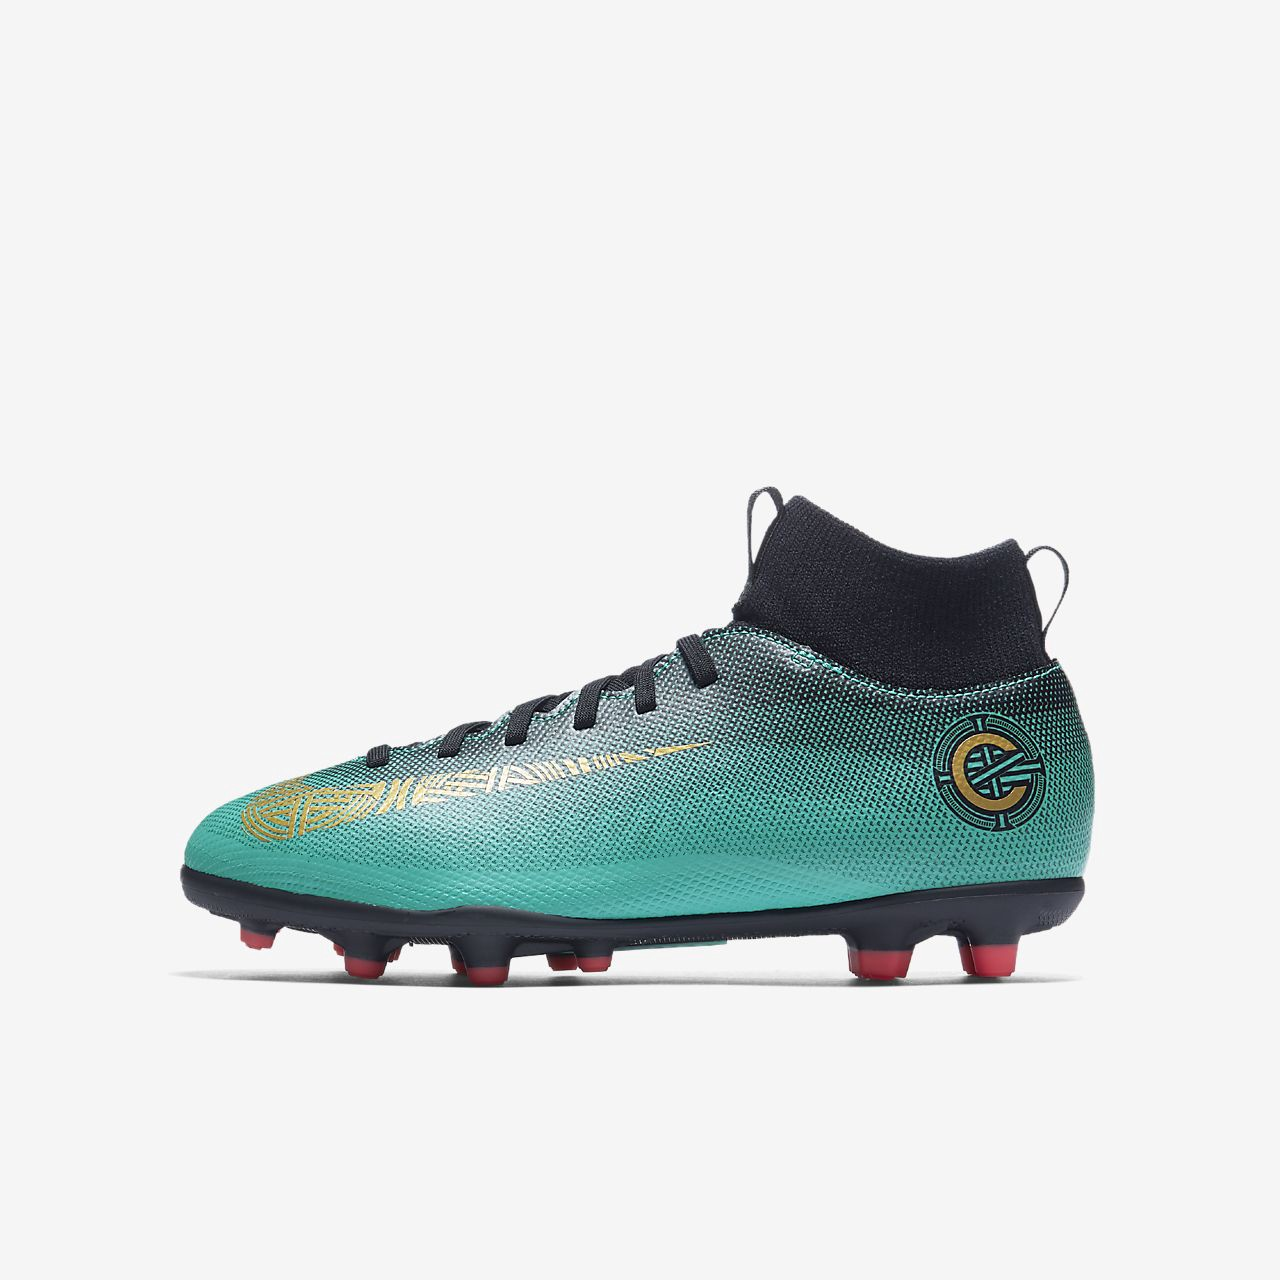 70c877690280 It does not even matter what kind of soccer cleats you prefer, since you  can find the best ones today in here, with a simple click performed in  front of ...